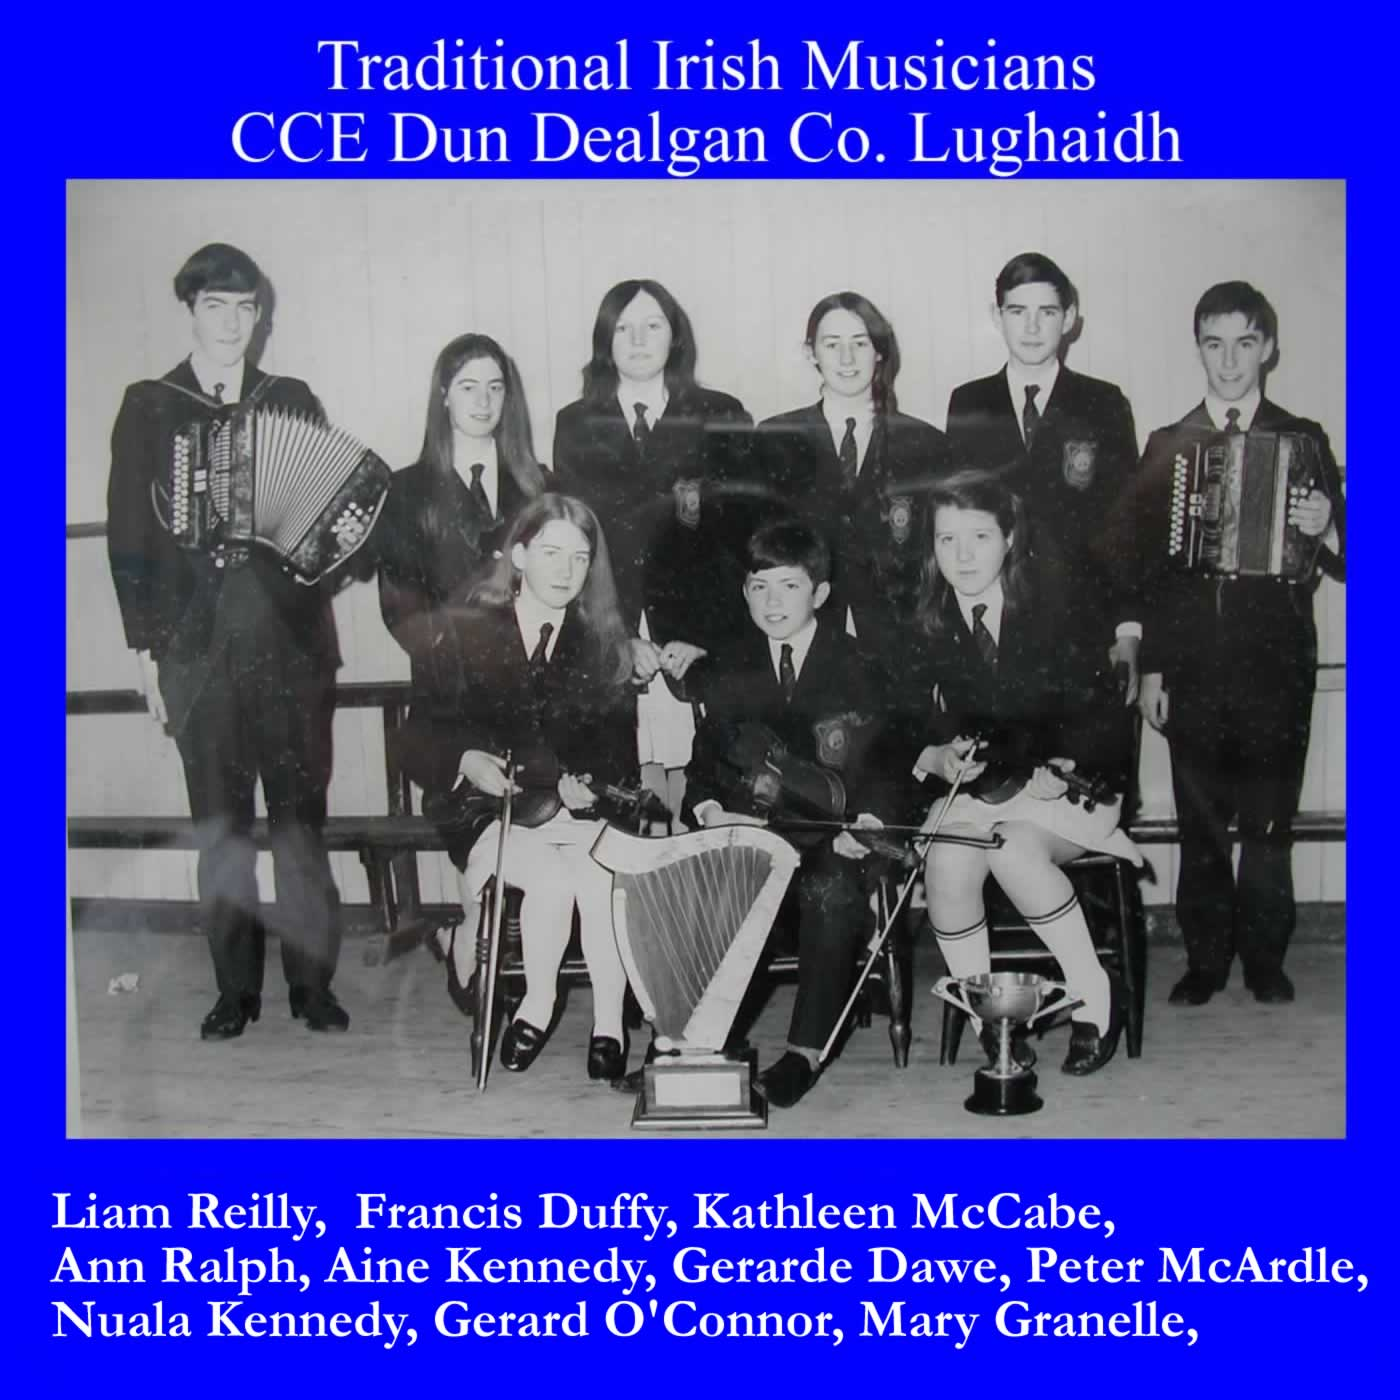 Traditional Irish Musicians 1969